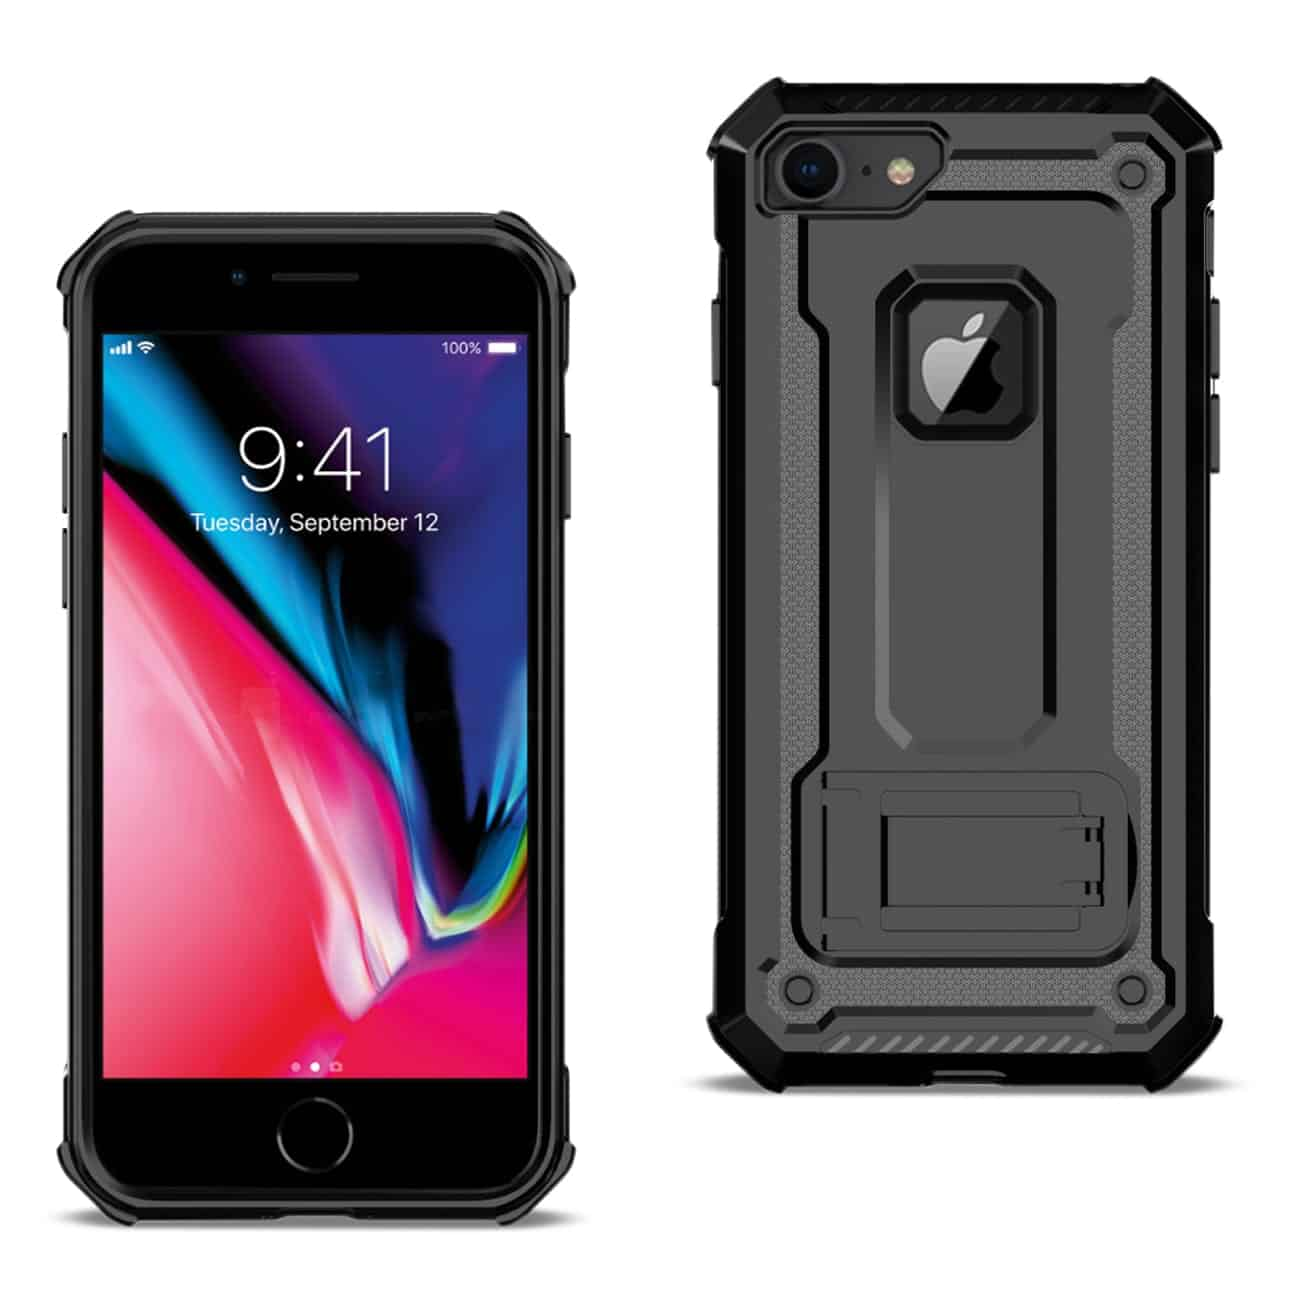 APPLE IPHONE 8 Case With Kickstand In Black